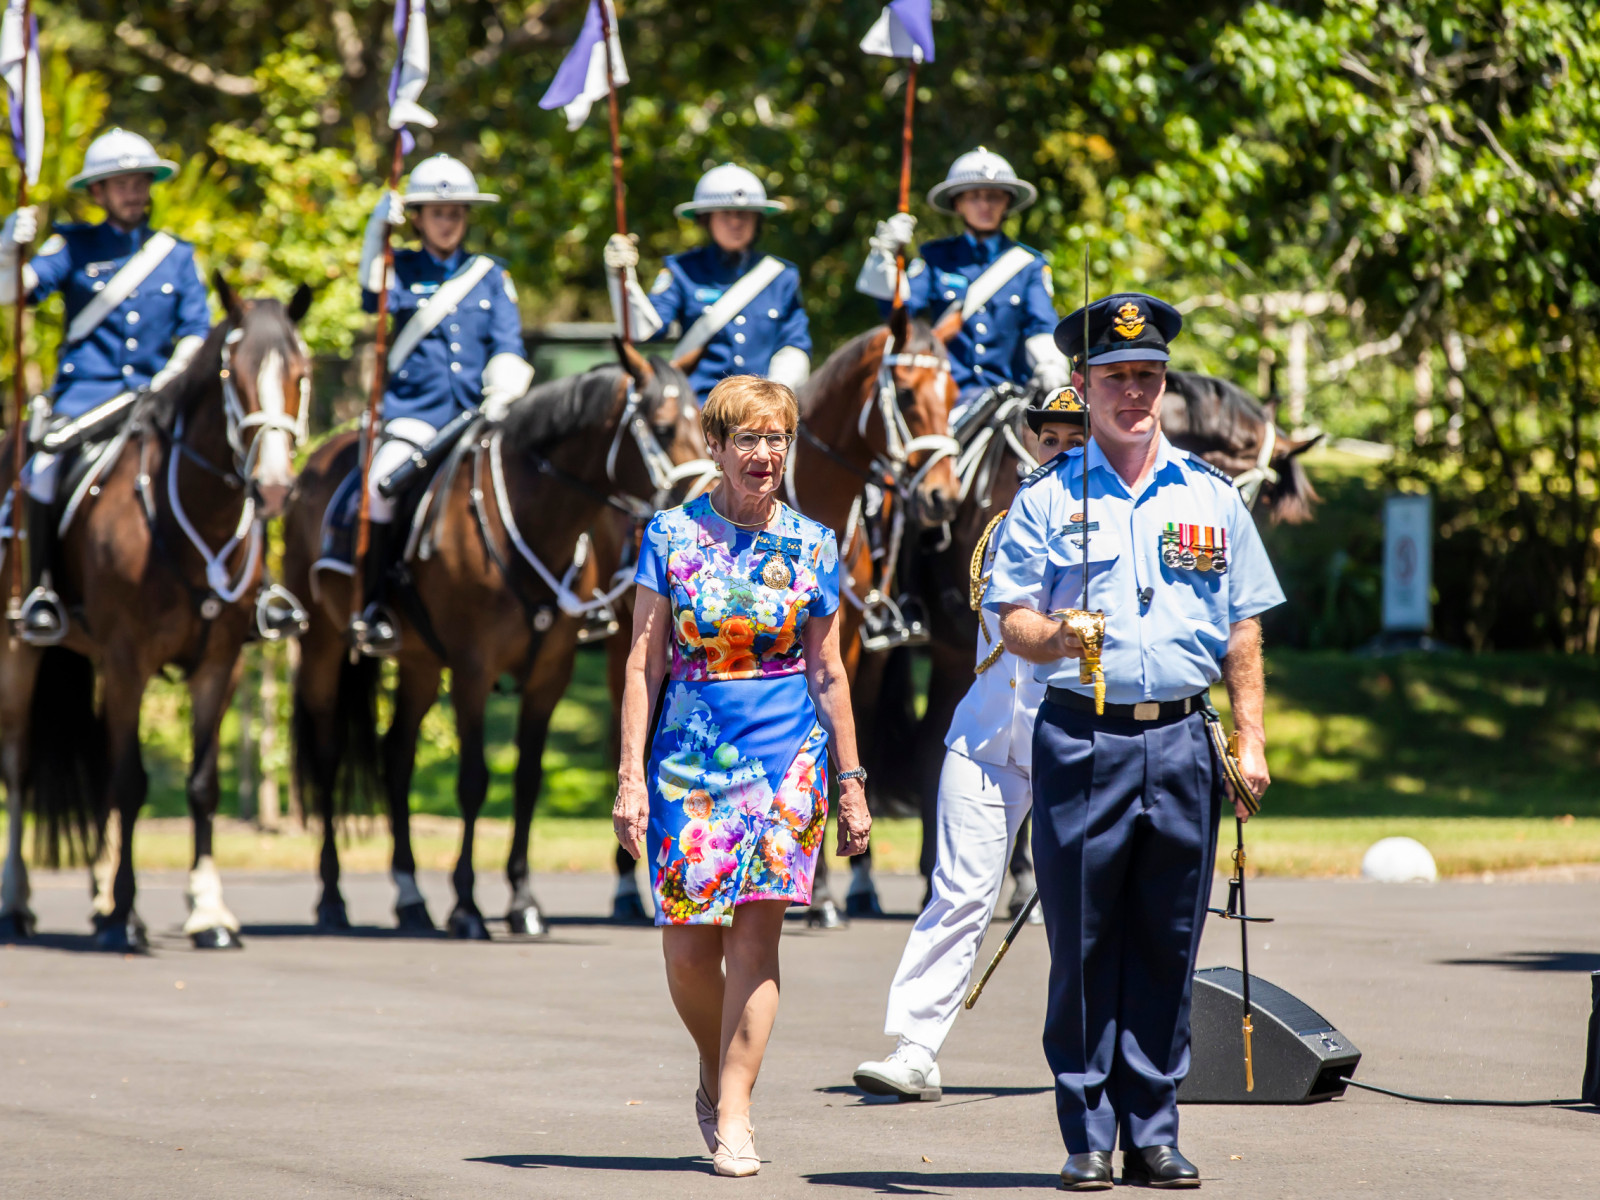 Governor of NSW Margaret Beazley OAM during Salute to Australia with NSW Mounted Police in background